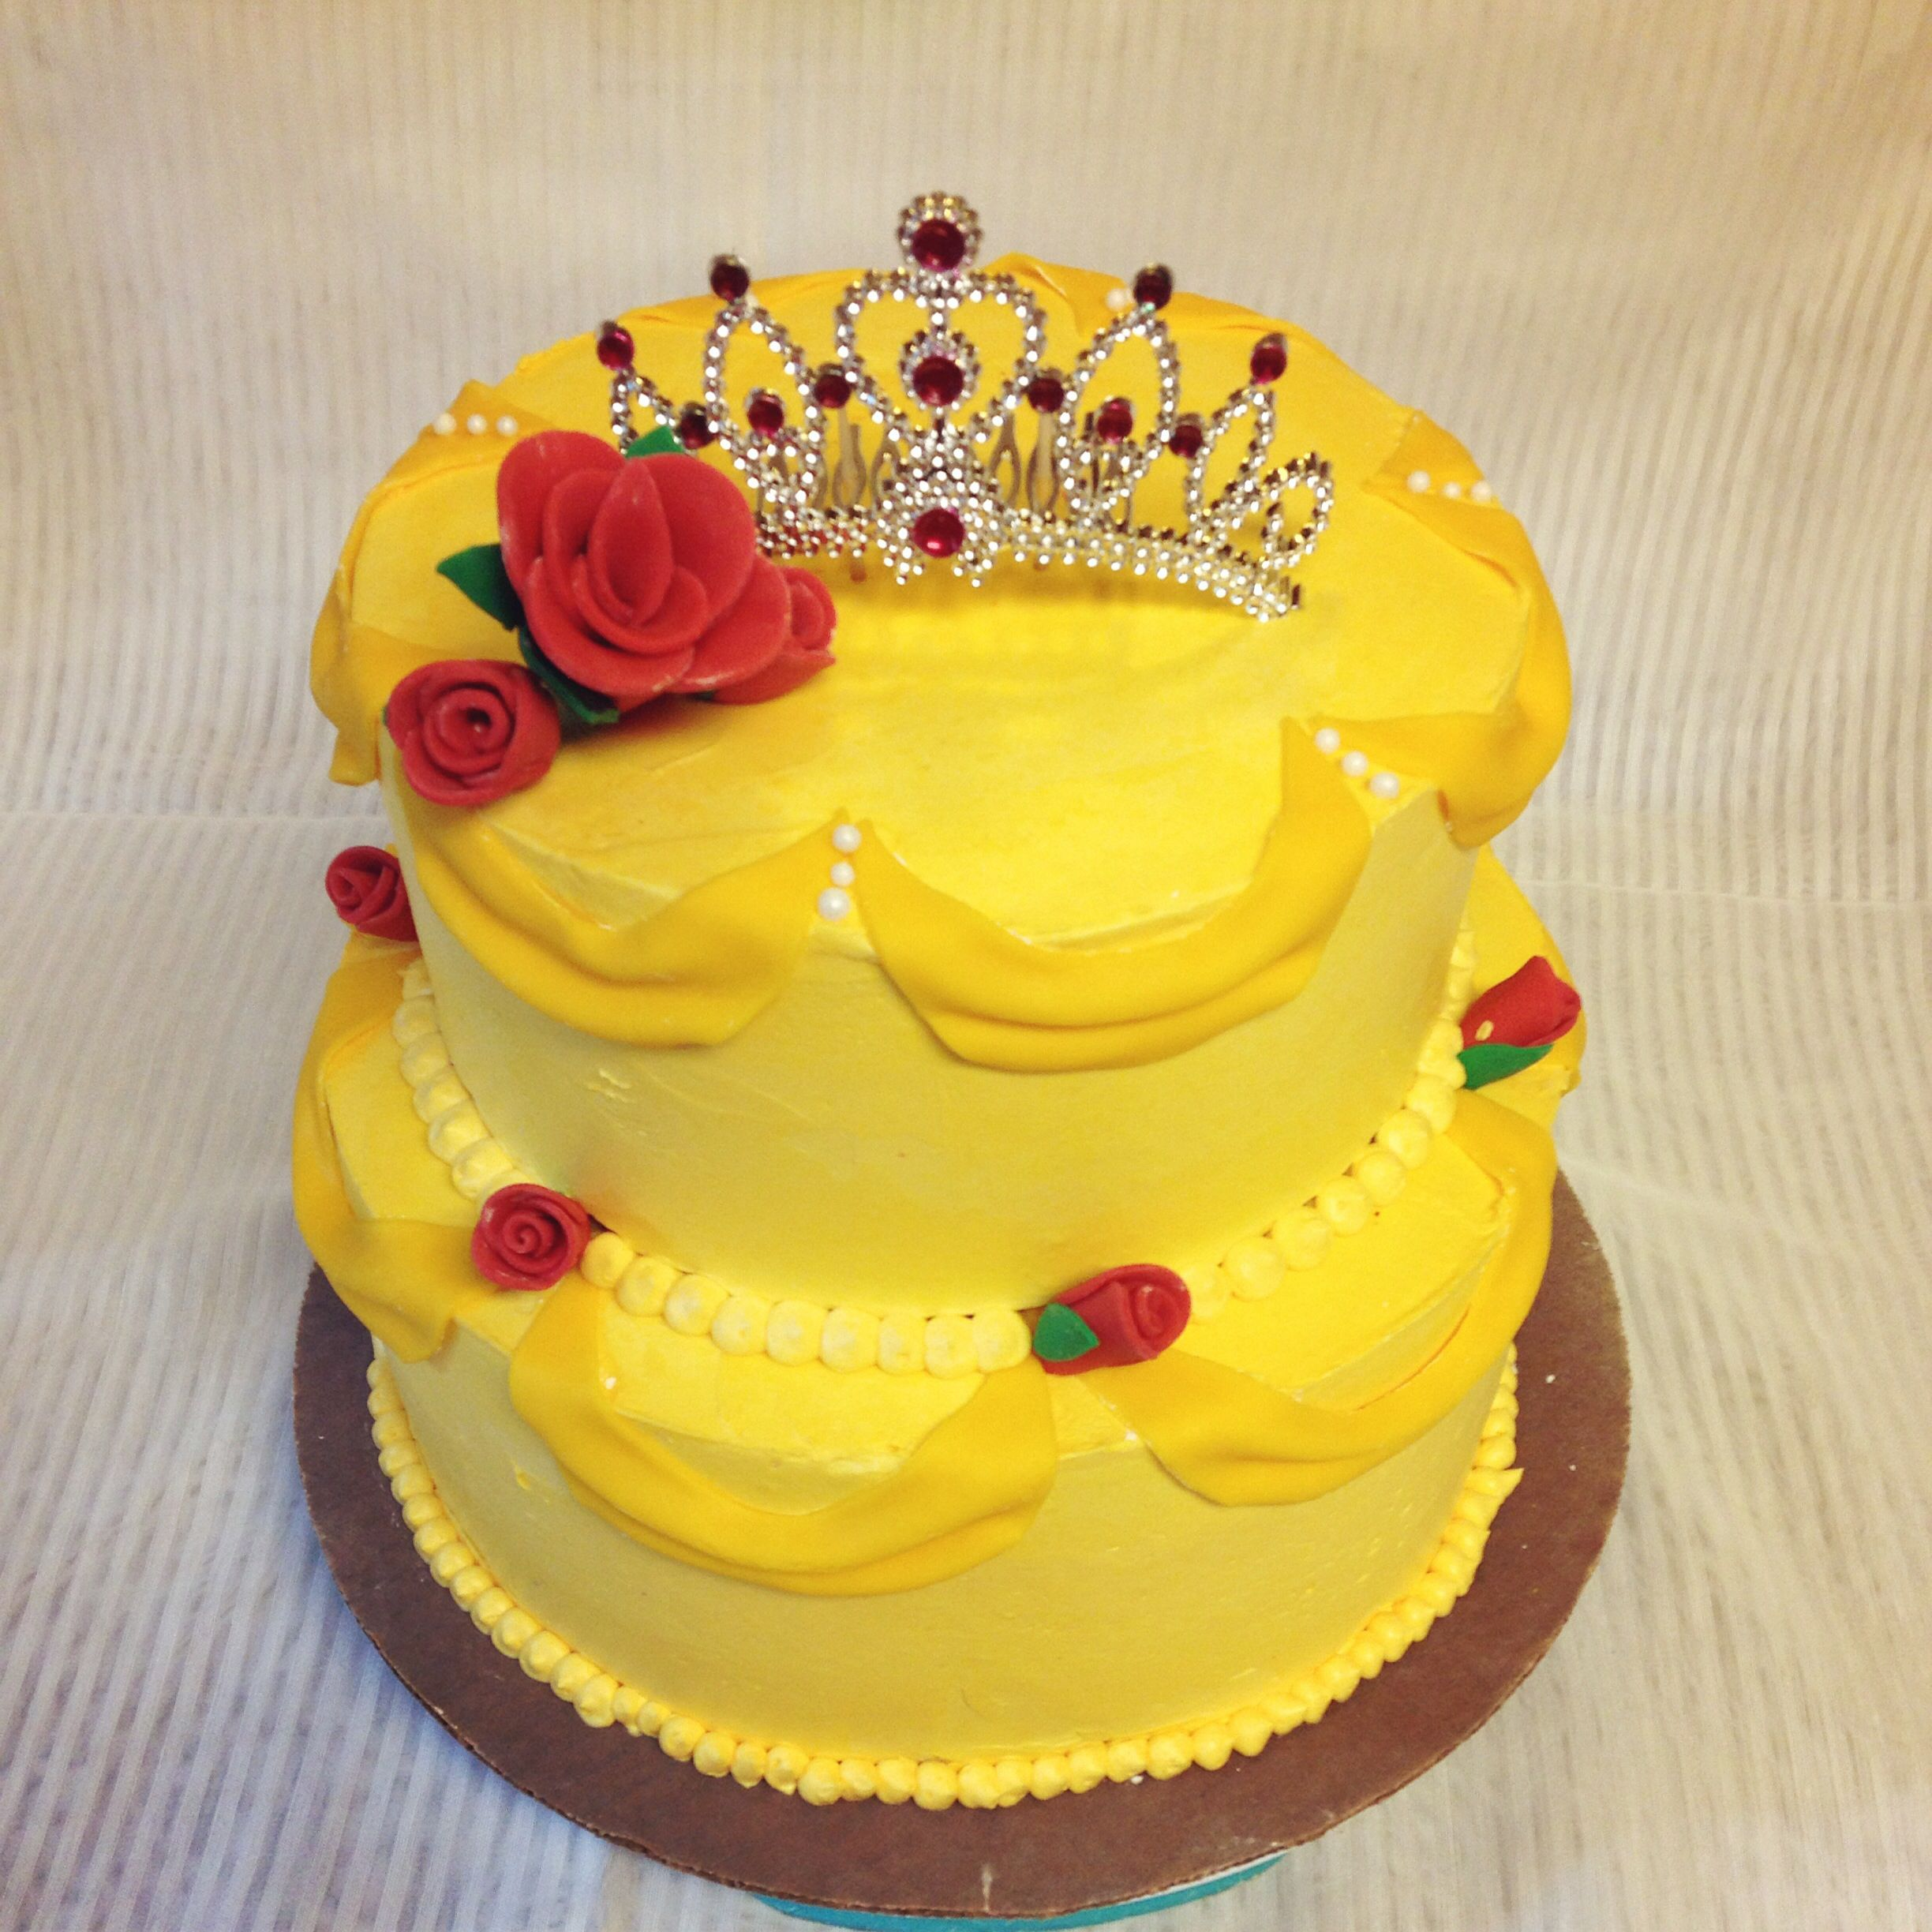 Beauty and The Beast cake for a first birthday party. | Cake Art ...